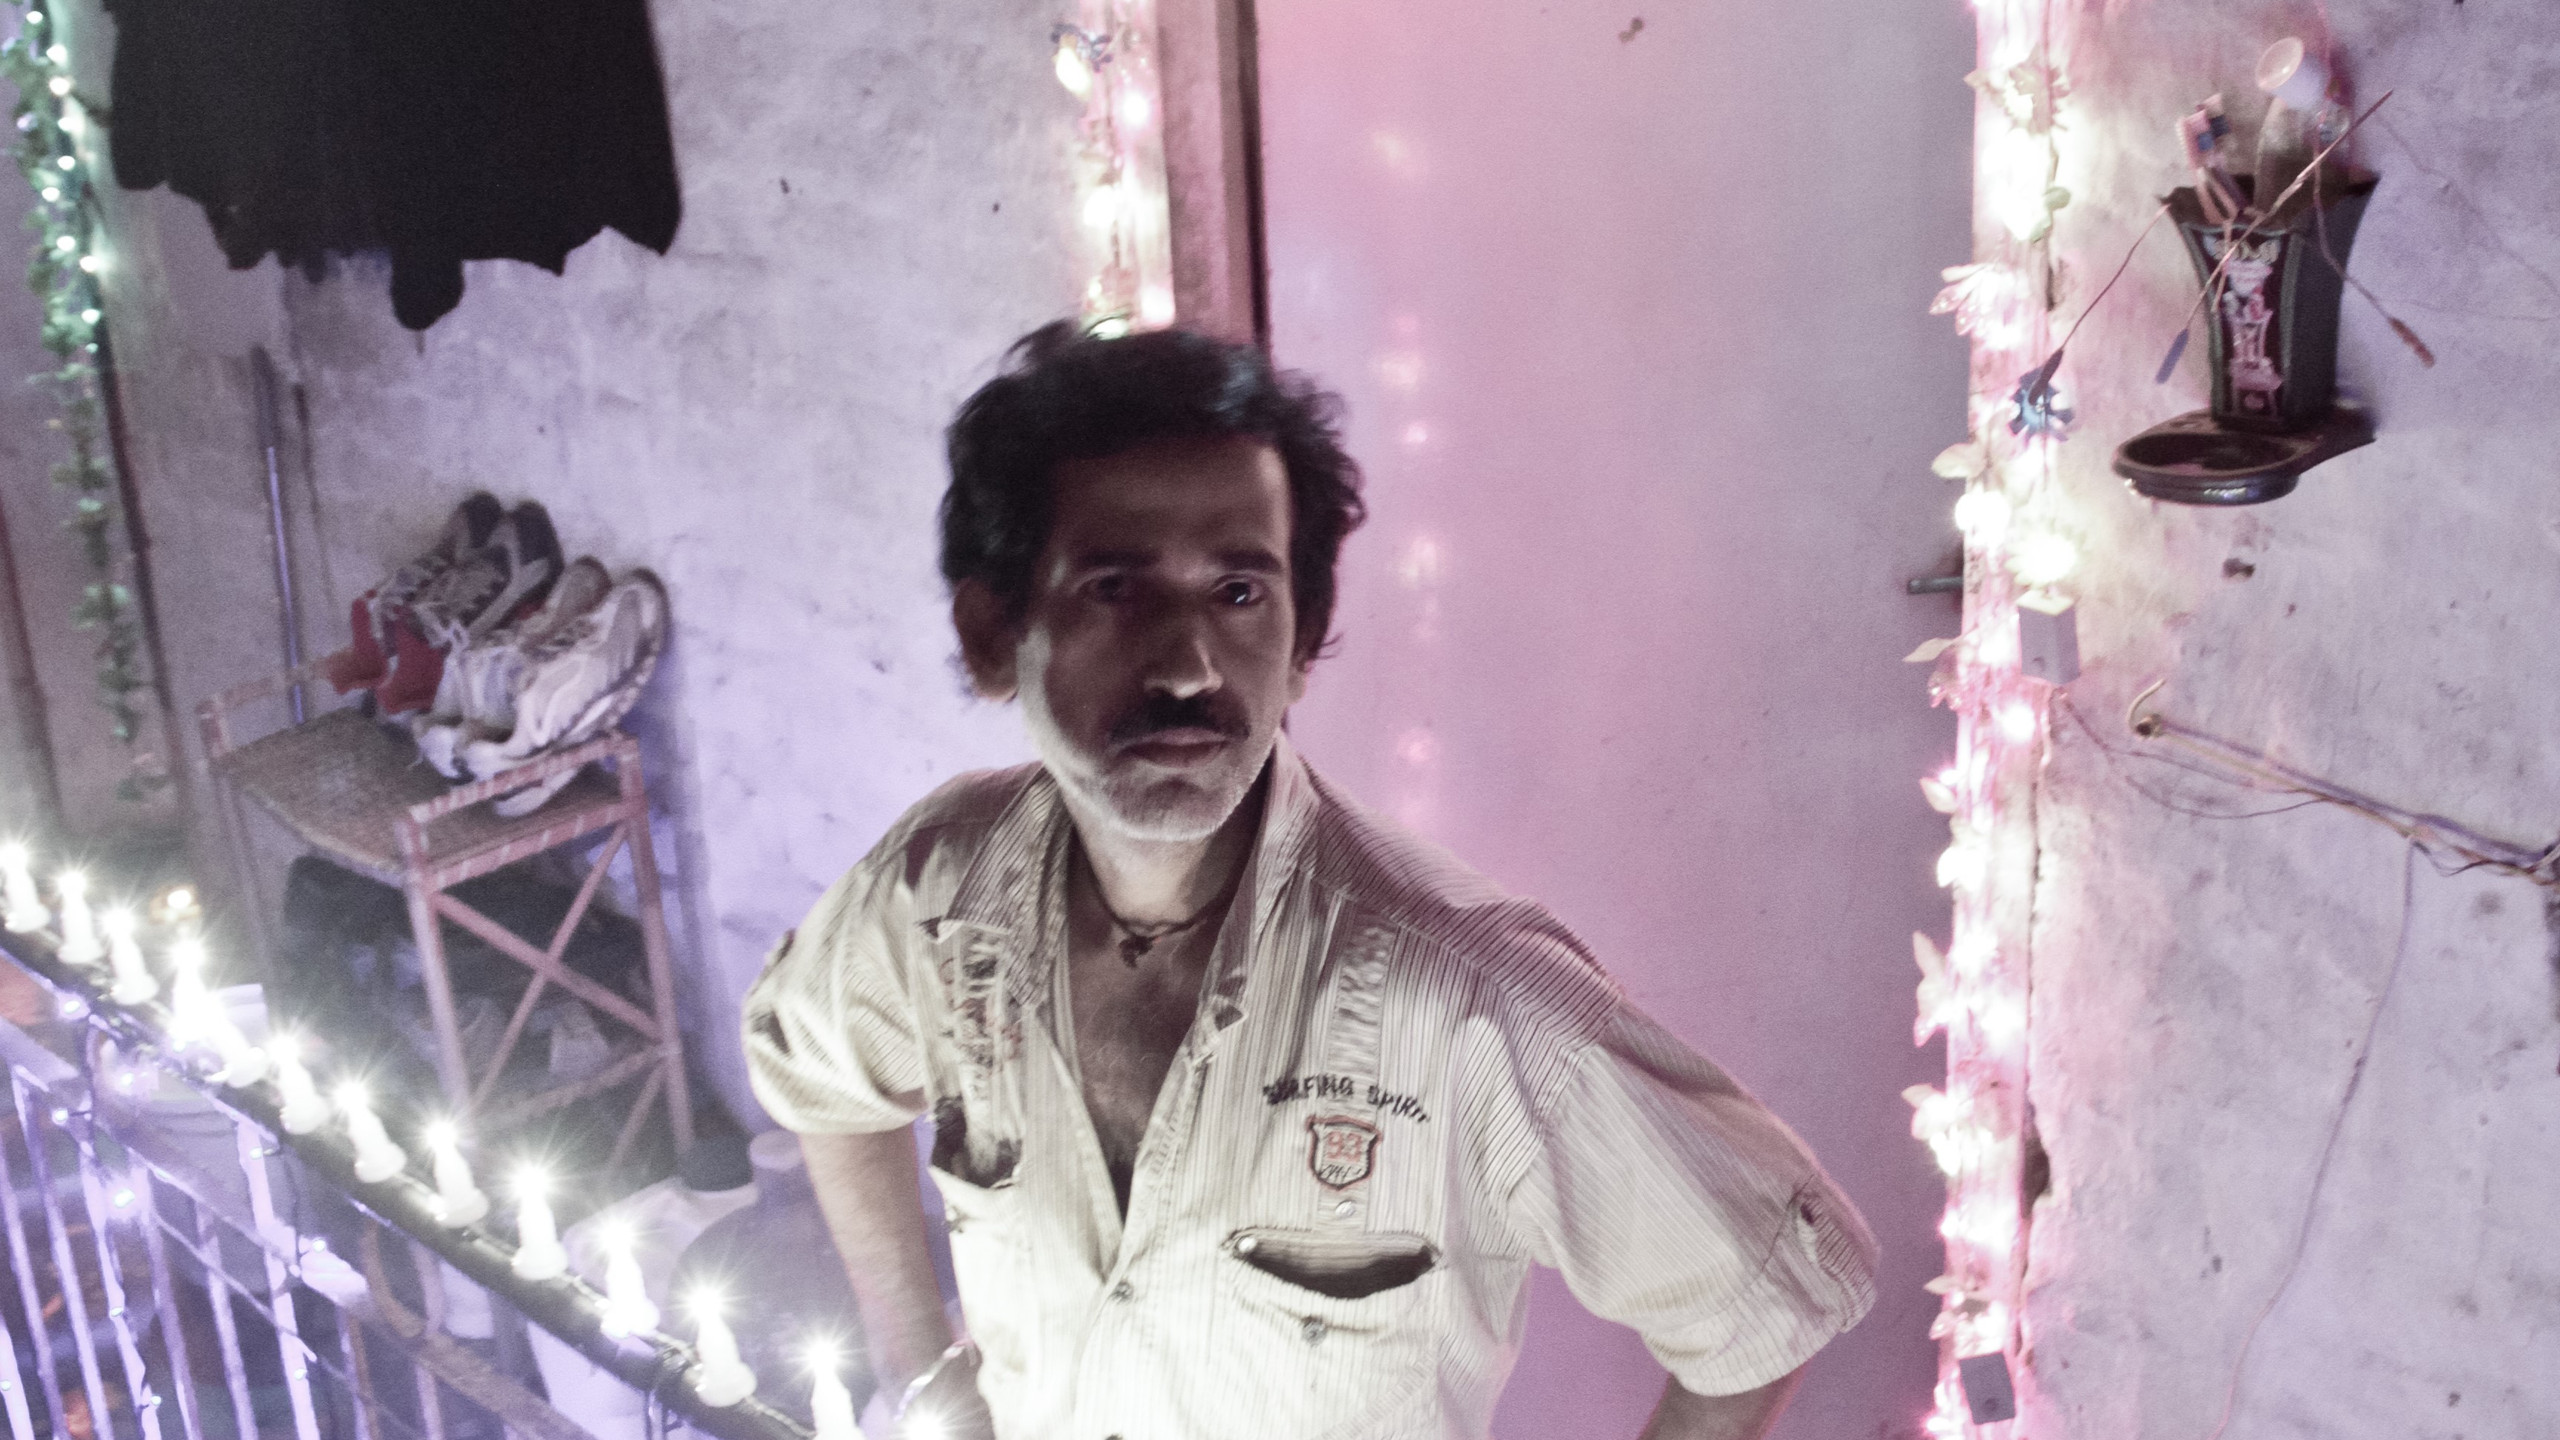 An electrician outside his one-room tenement that is decorated for Diwali, a major Hindu festival in India